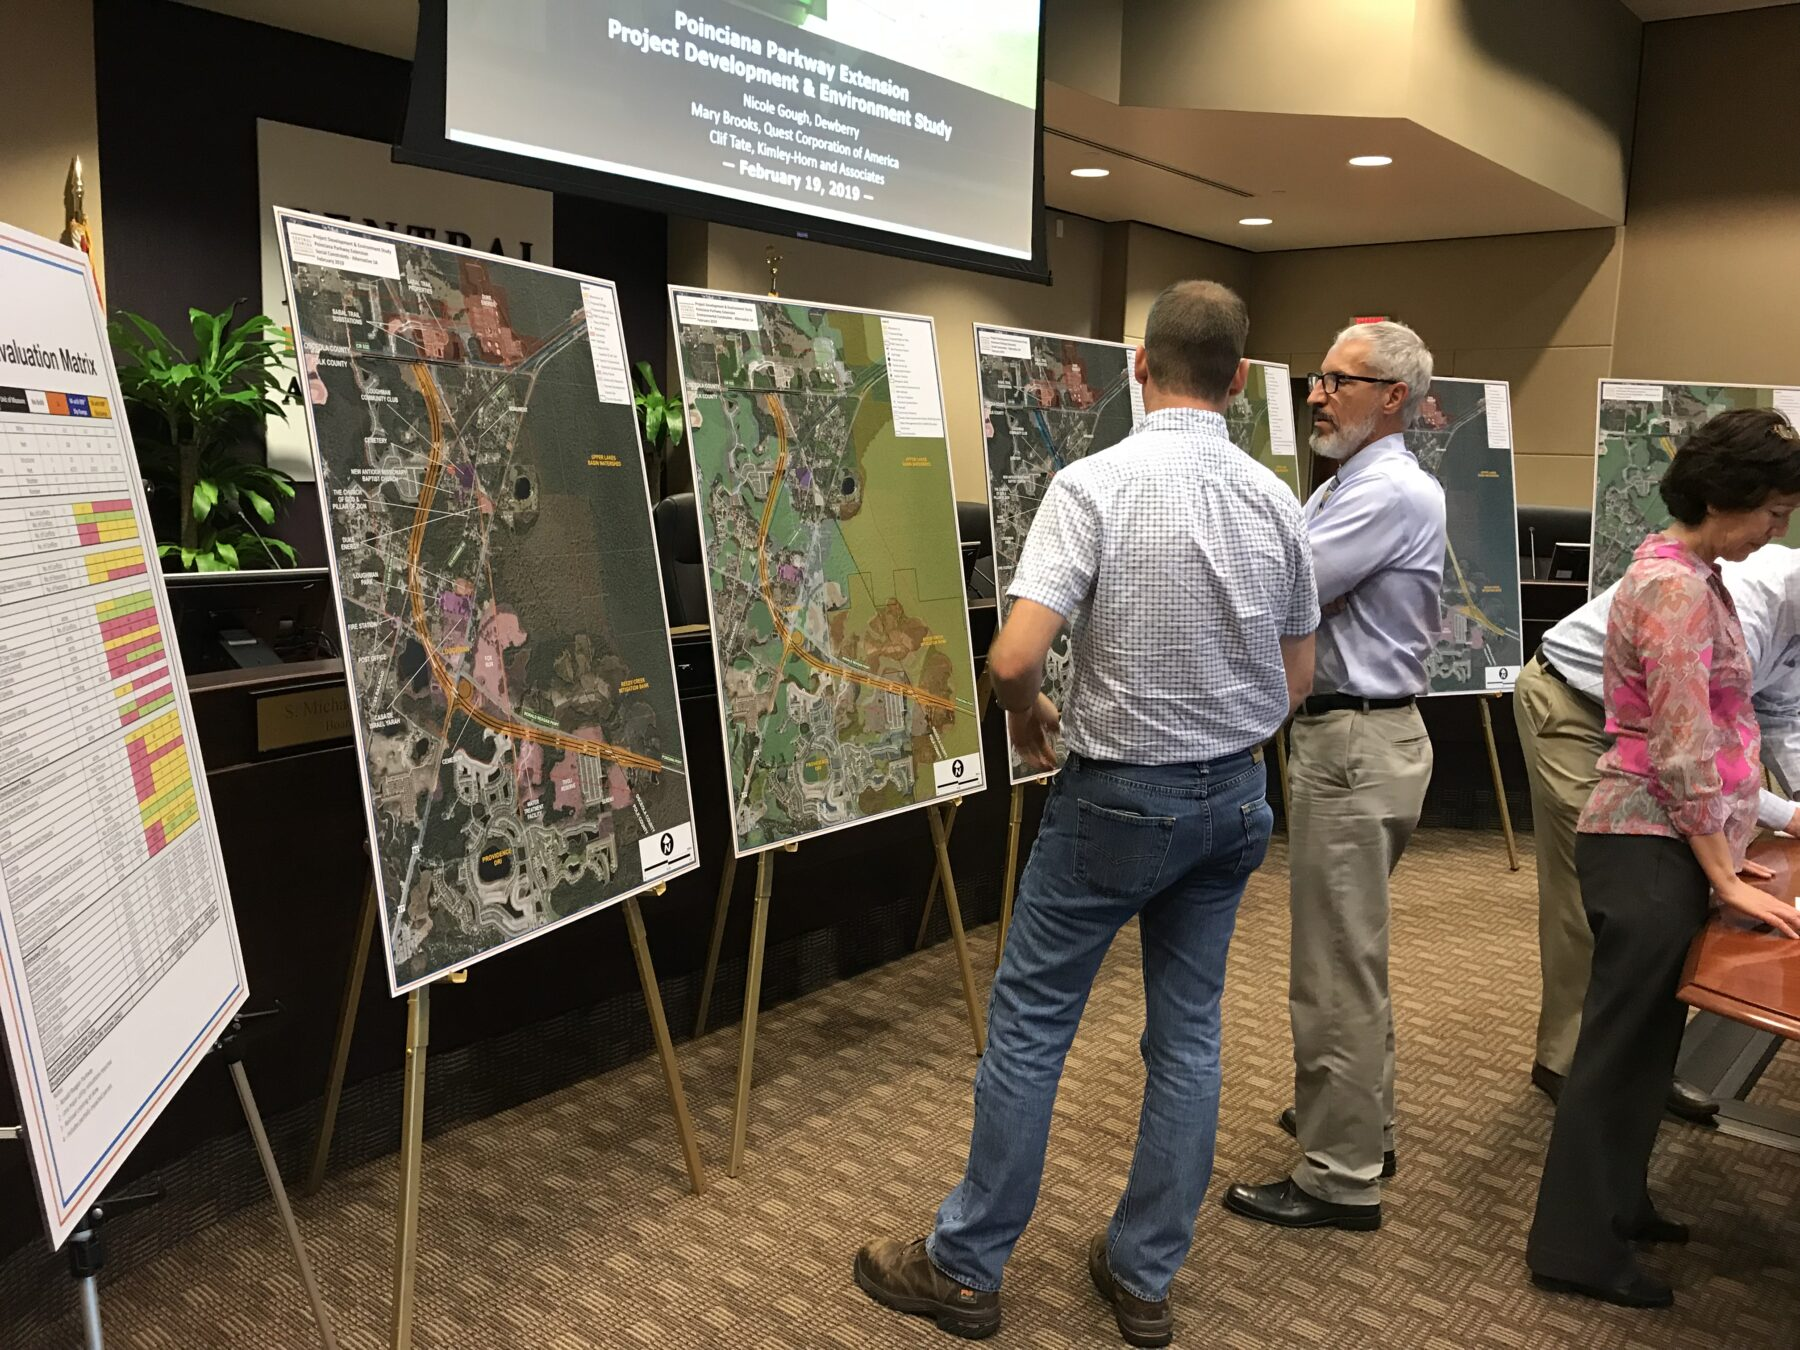 Poinciana Parkway Extension PAG #1 Meeting August 15, 2018